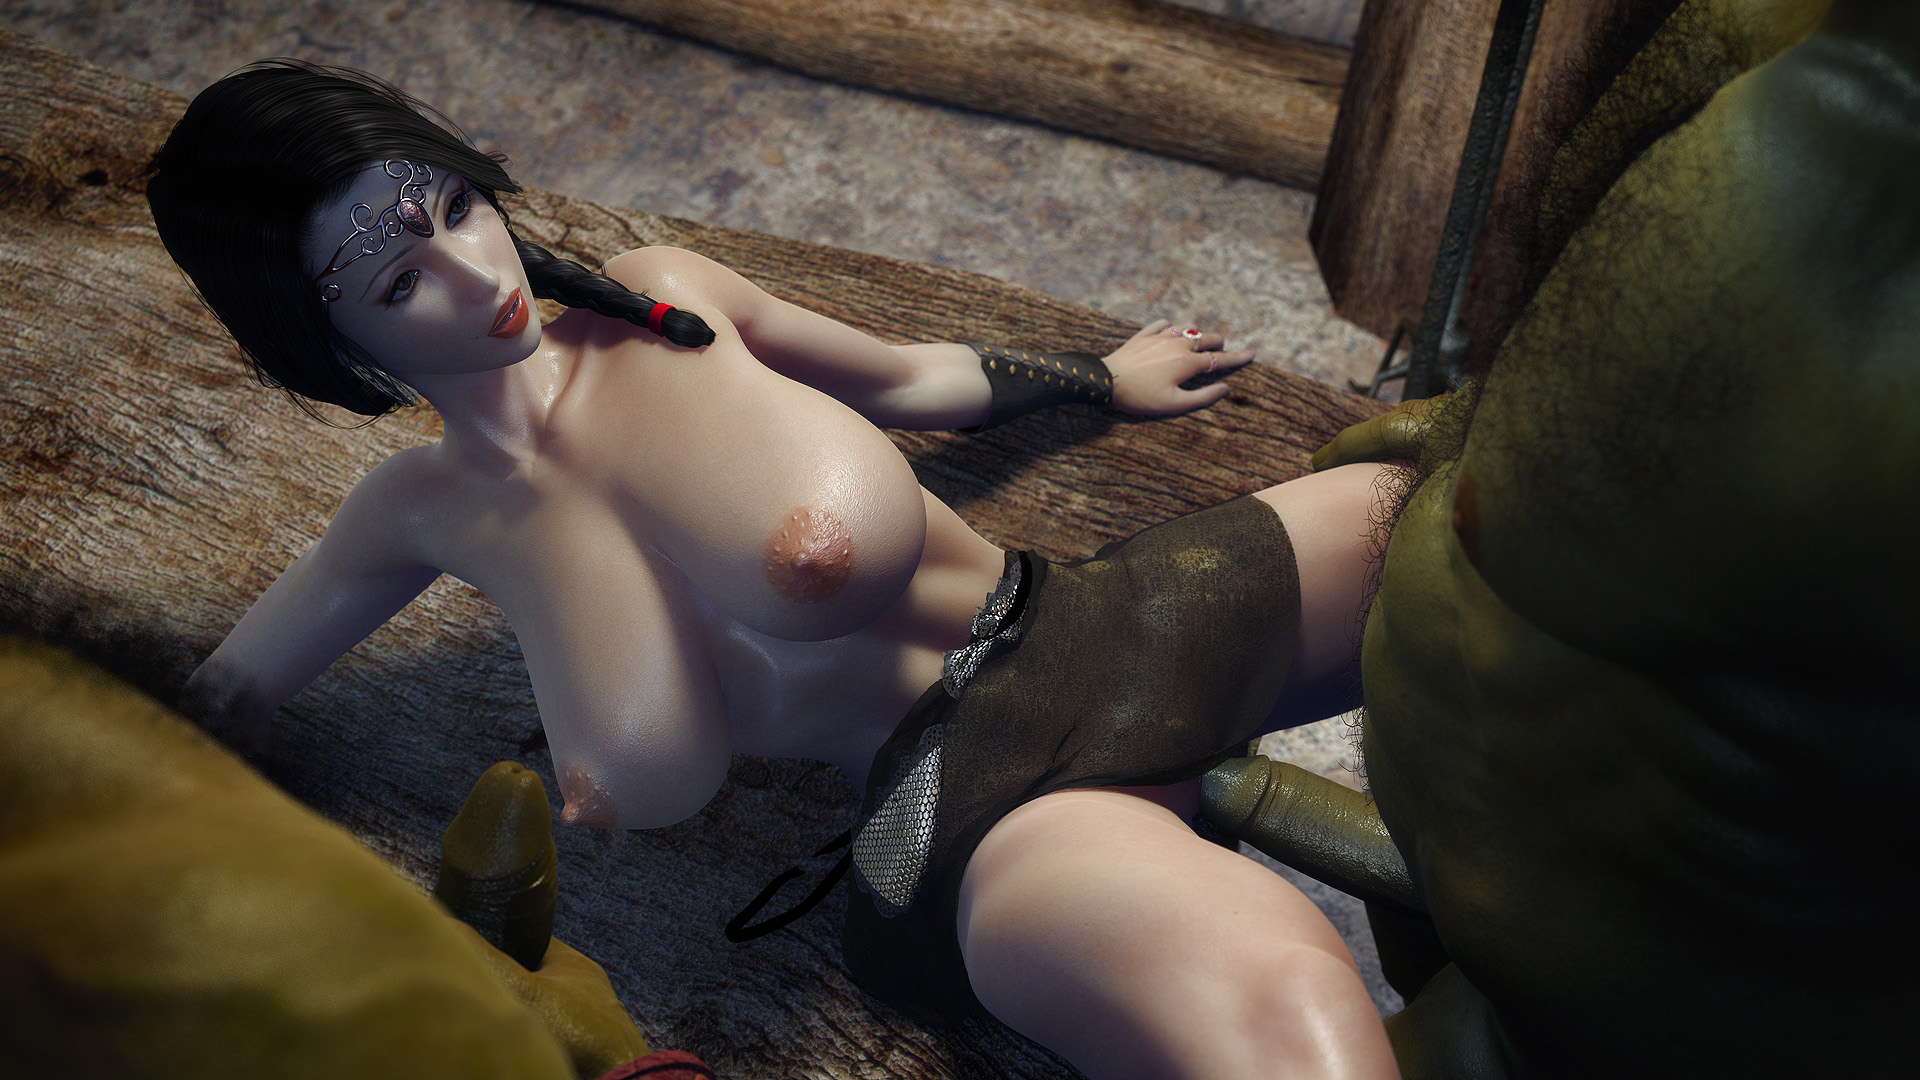 Two orc fuck princess 3d sexual image